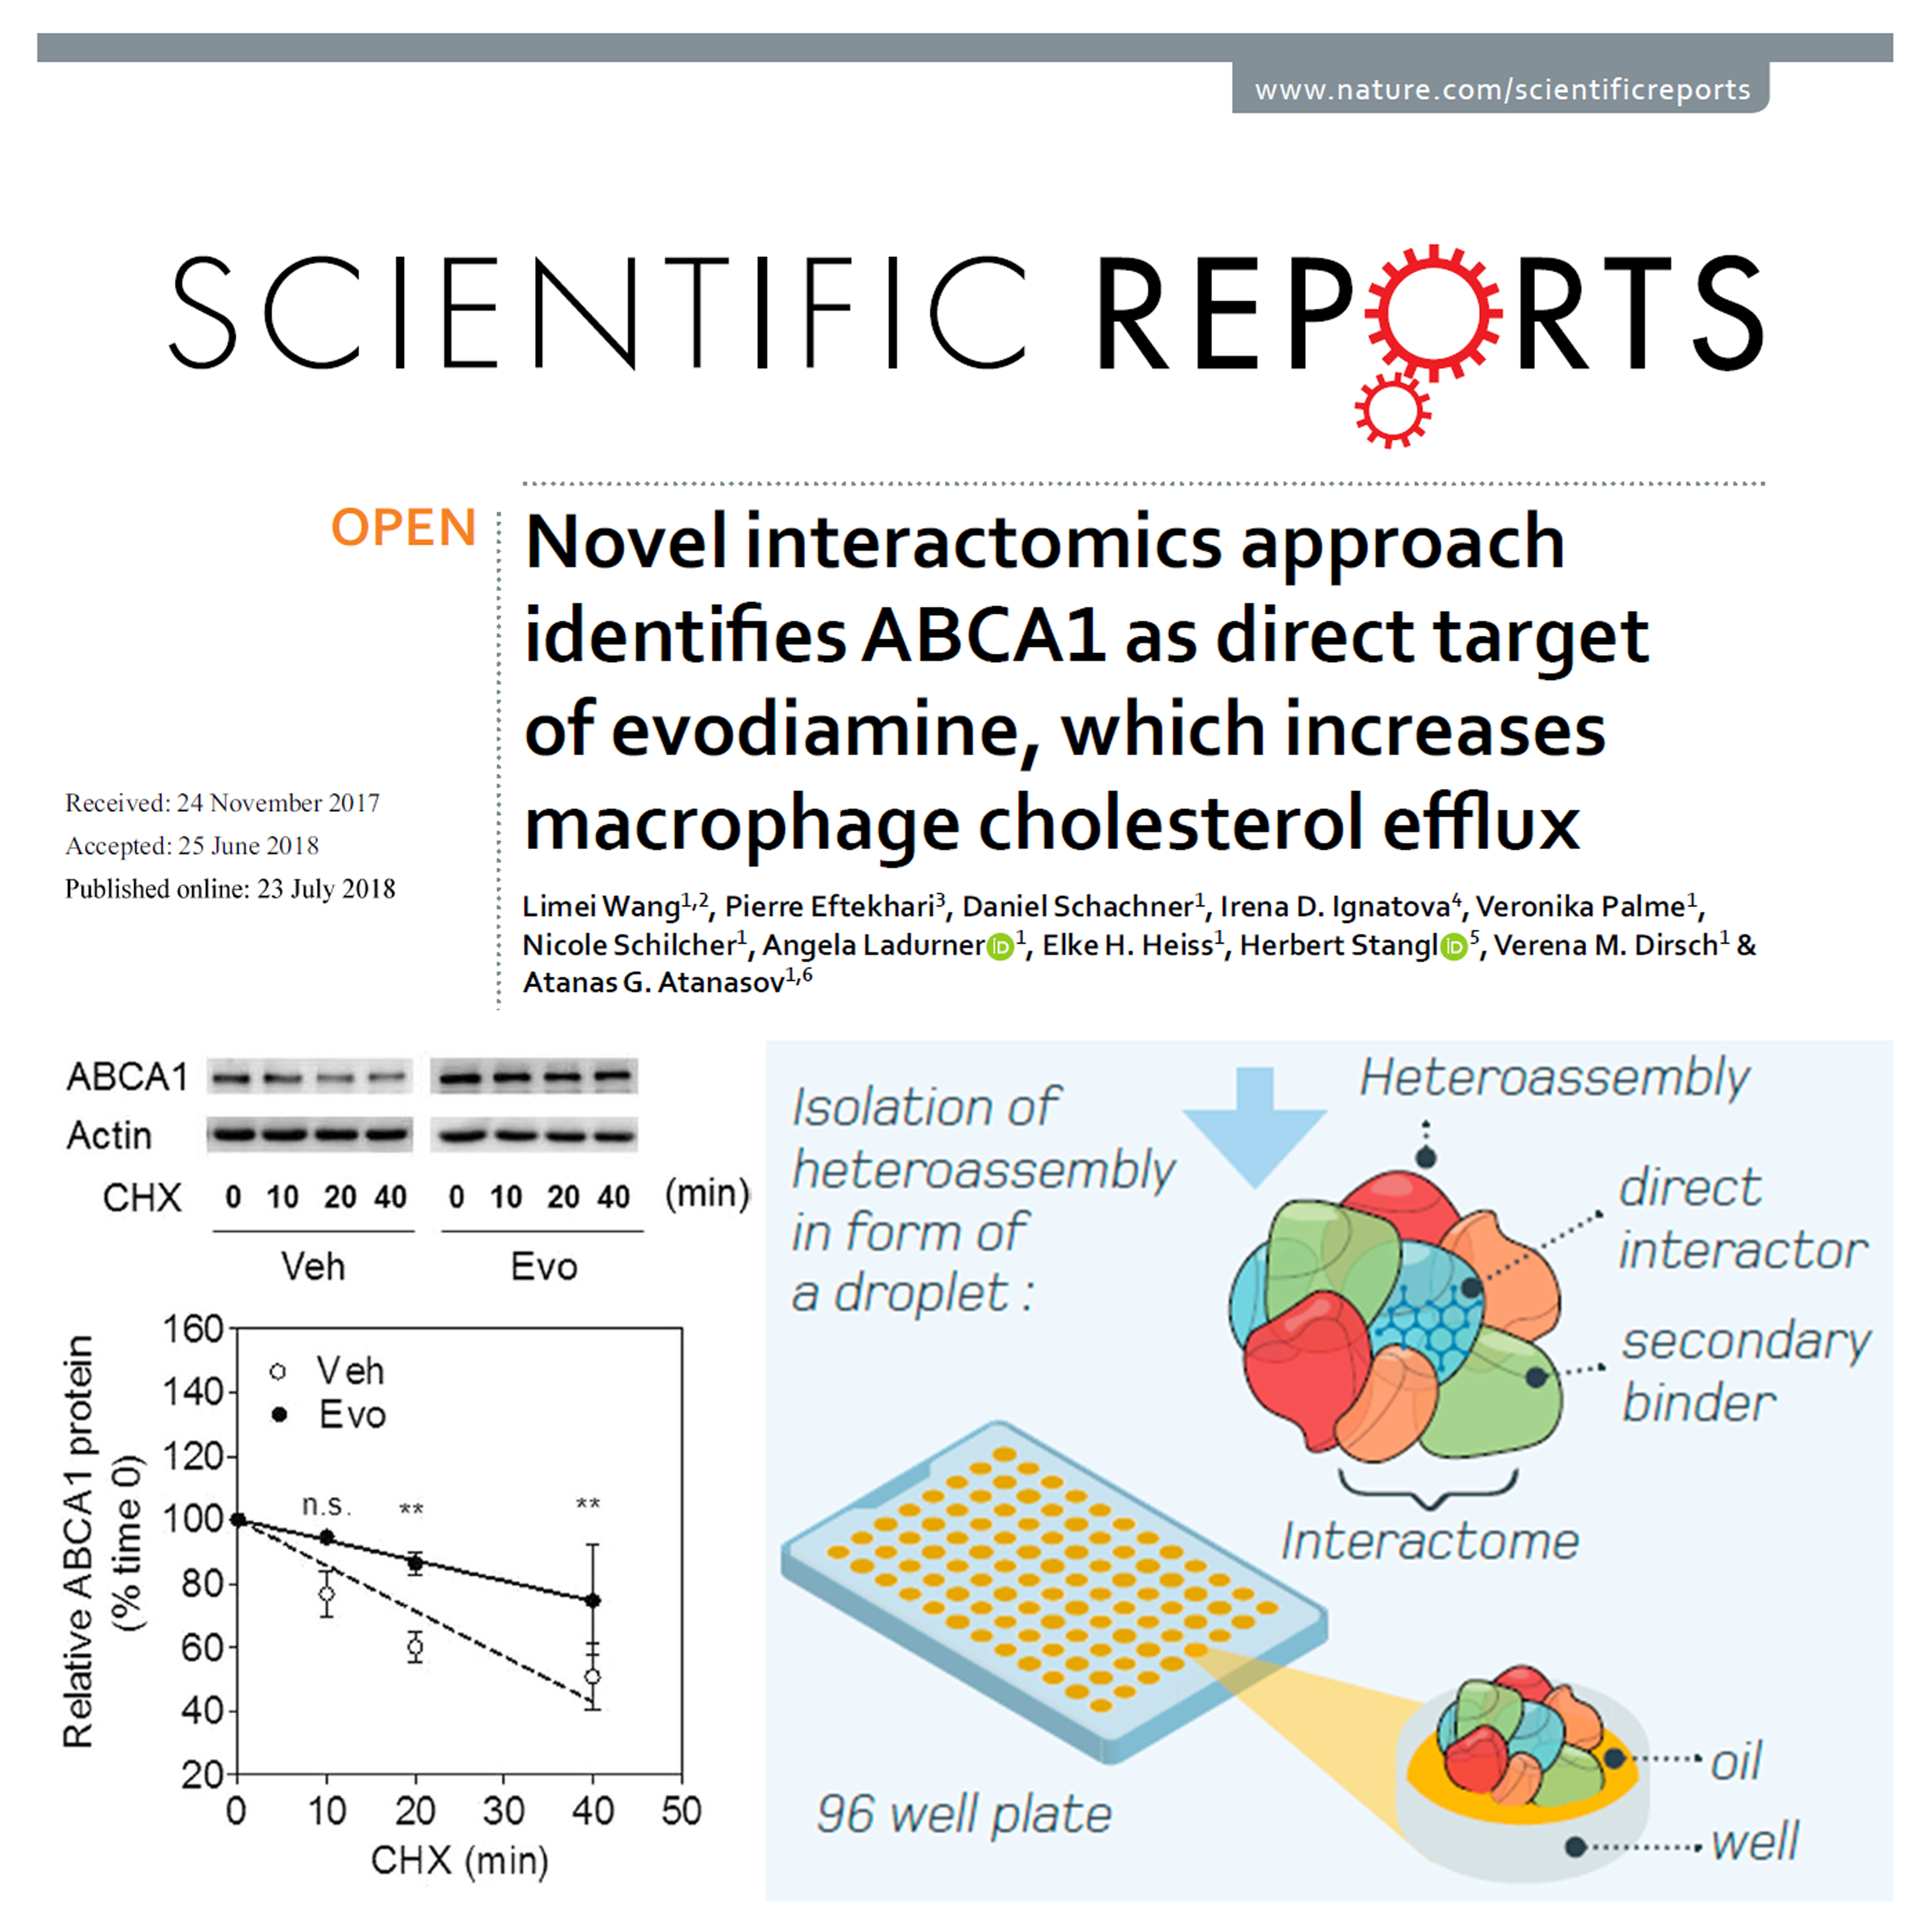 Novel interactomics approach identifies ABCA1 as direct target of evodiamine which increases macrophage cholesterol efflux